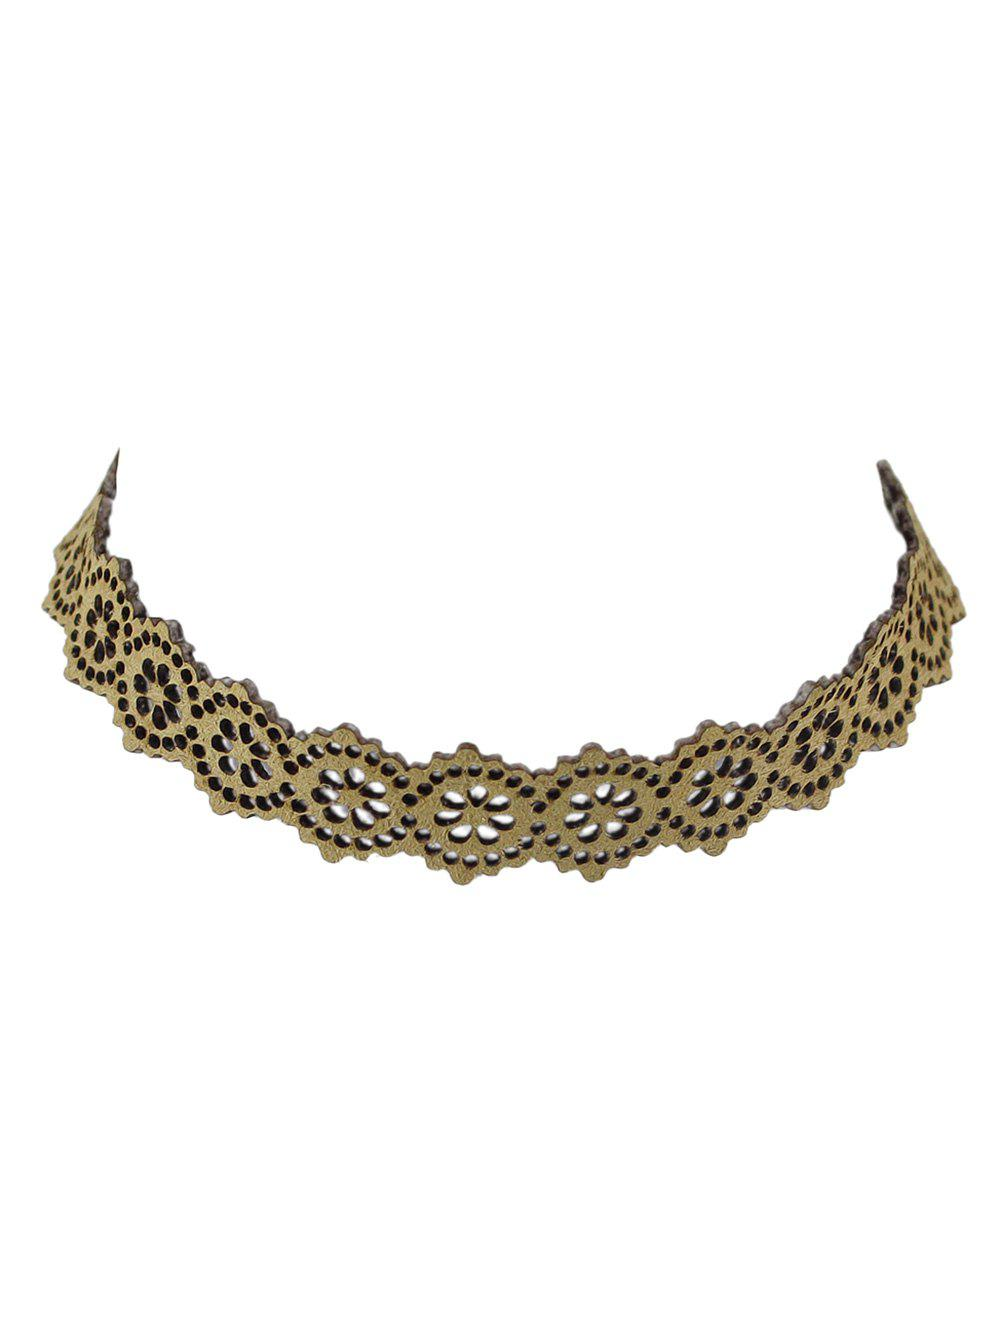 Floral Hollow Out Velvet Choker Necklace - KHAKI